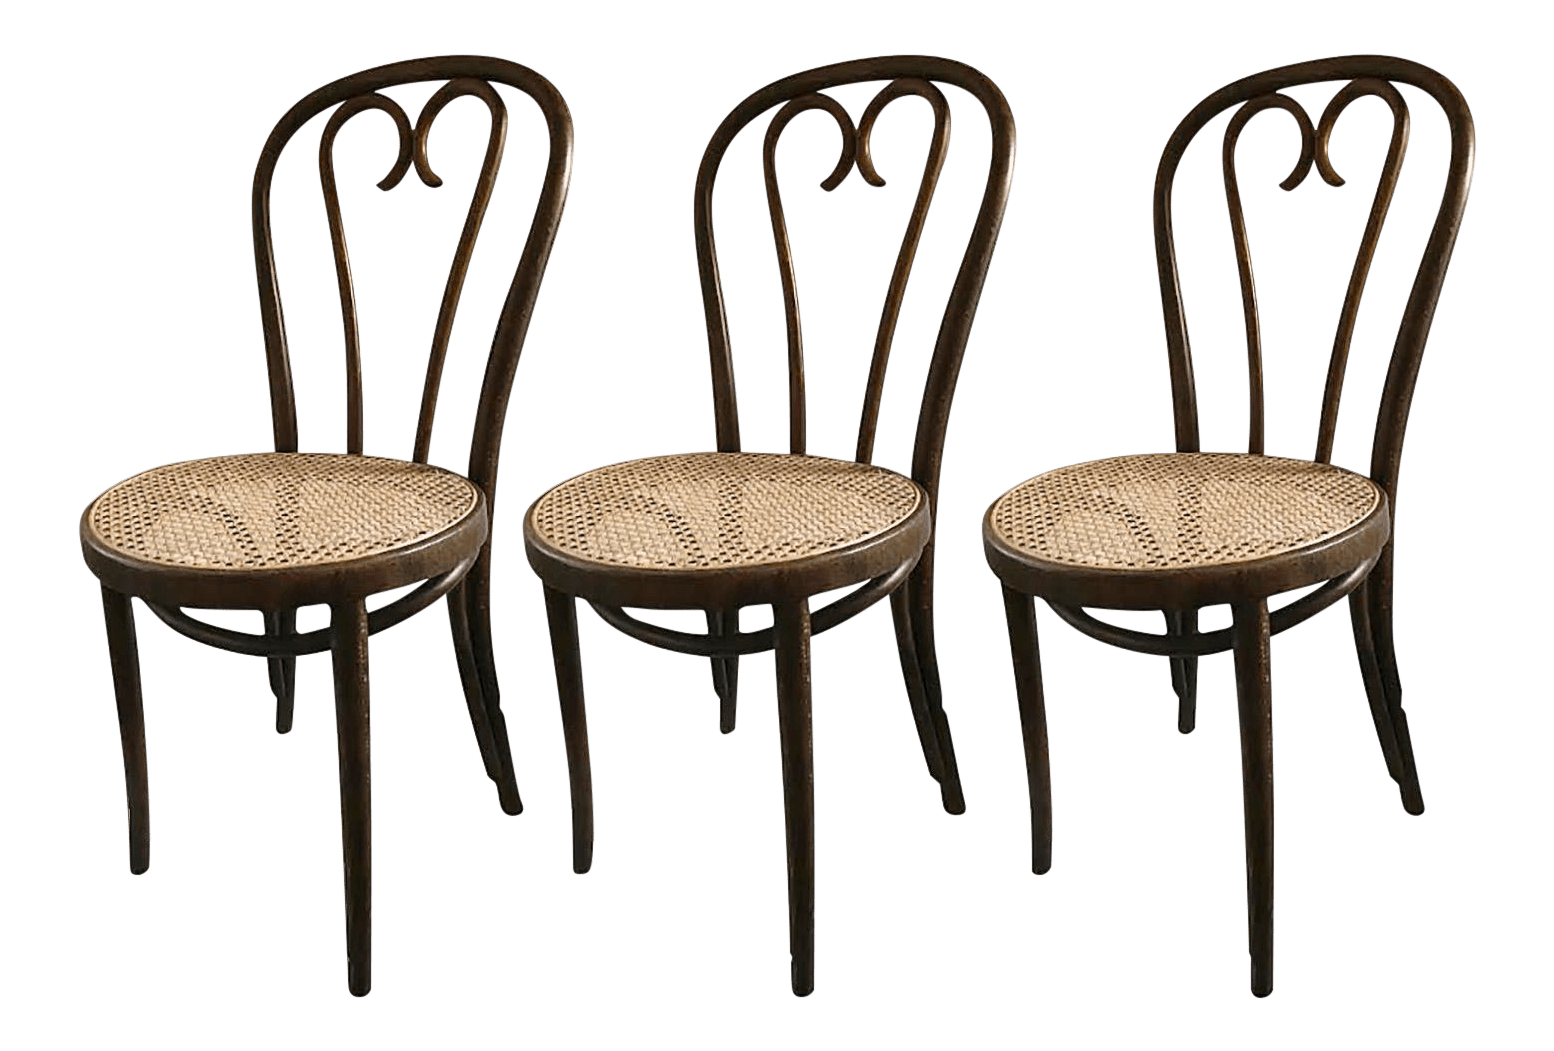 vintage bentwood chairs modern chaise lounge living room late 20th century thonet style set of 3 chairish